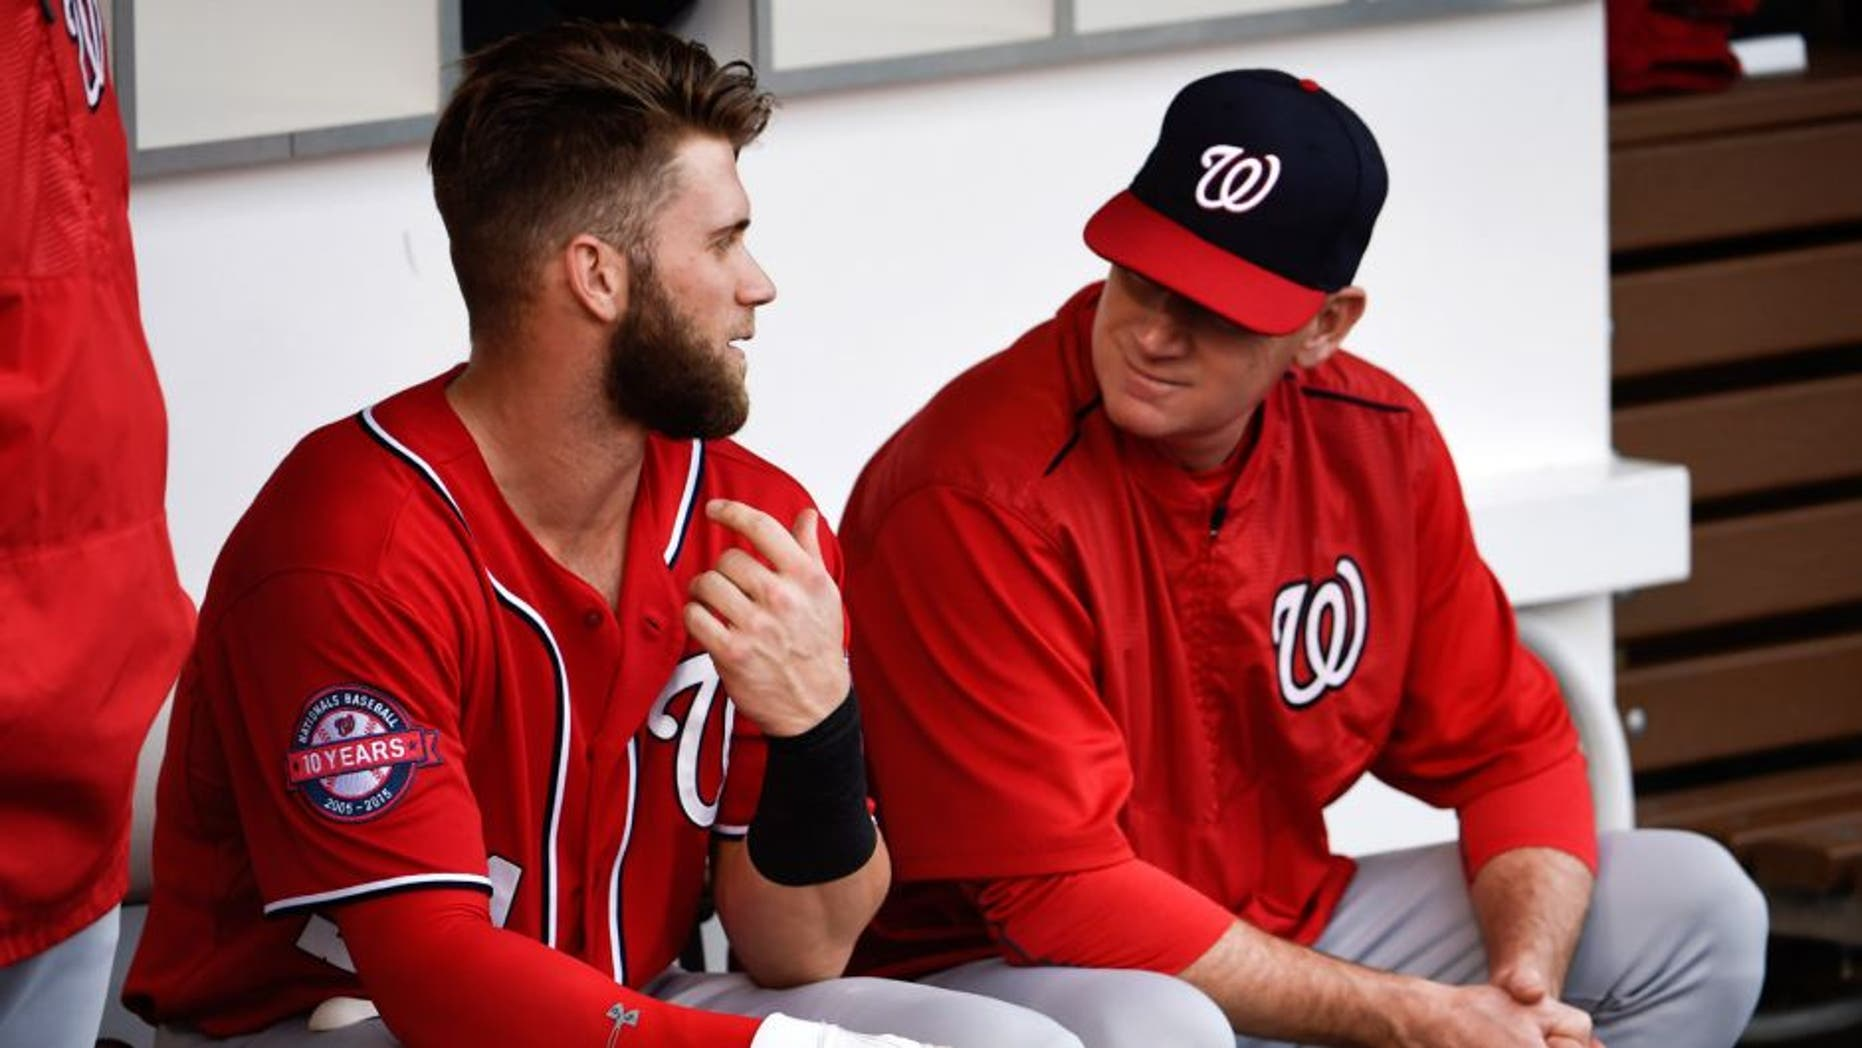 SAN DIEGO, CA - MAY 16: Bryce Harper #34 of the Washington Nationals, left, talks with Matt Williams #9 before a baseball game against the San Diego Padres at Petco Park May 16, 2015 in San Diego, California. (Photo by Denis Poroy/Getty Images)